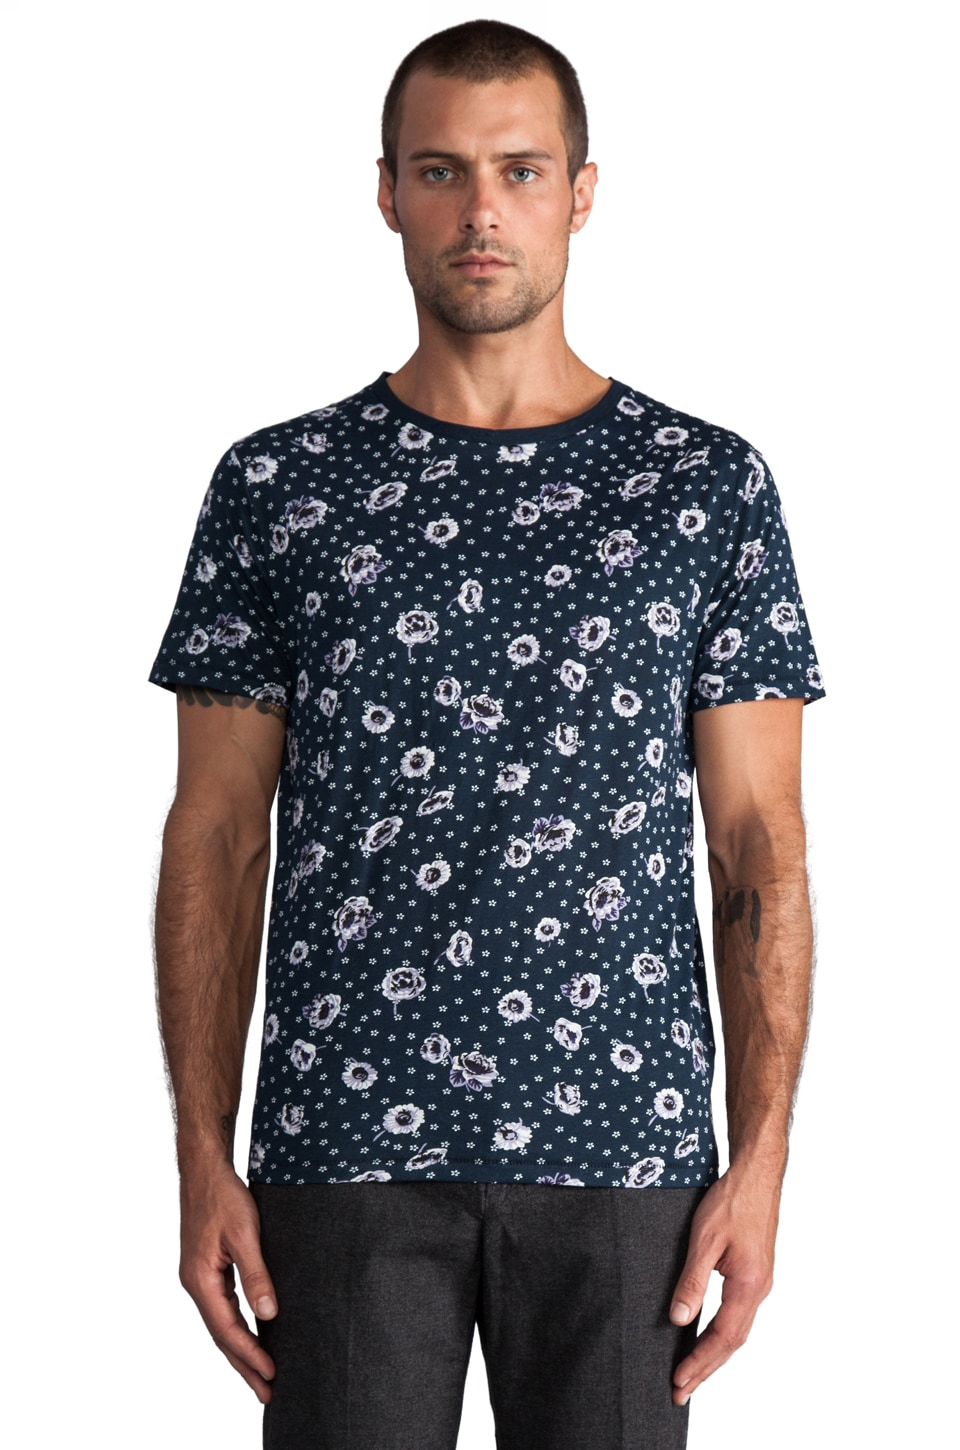 GANT Rugger Coming Up Roses Tee in Marine